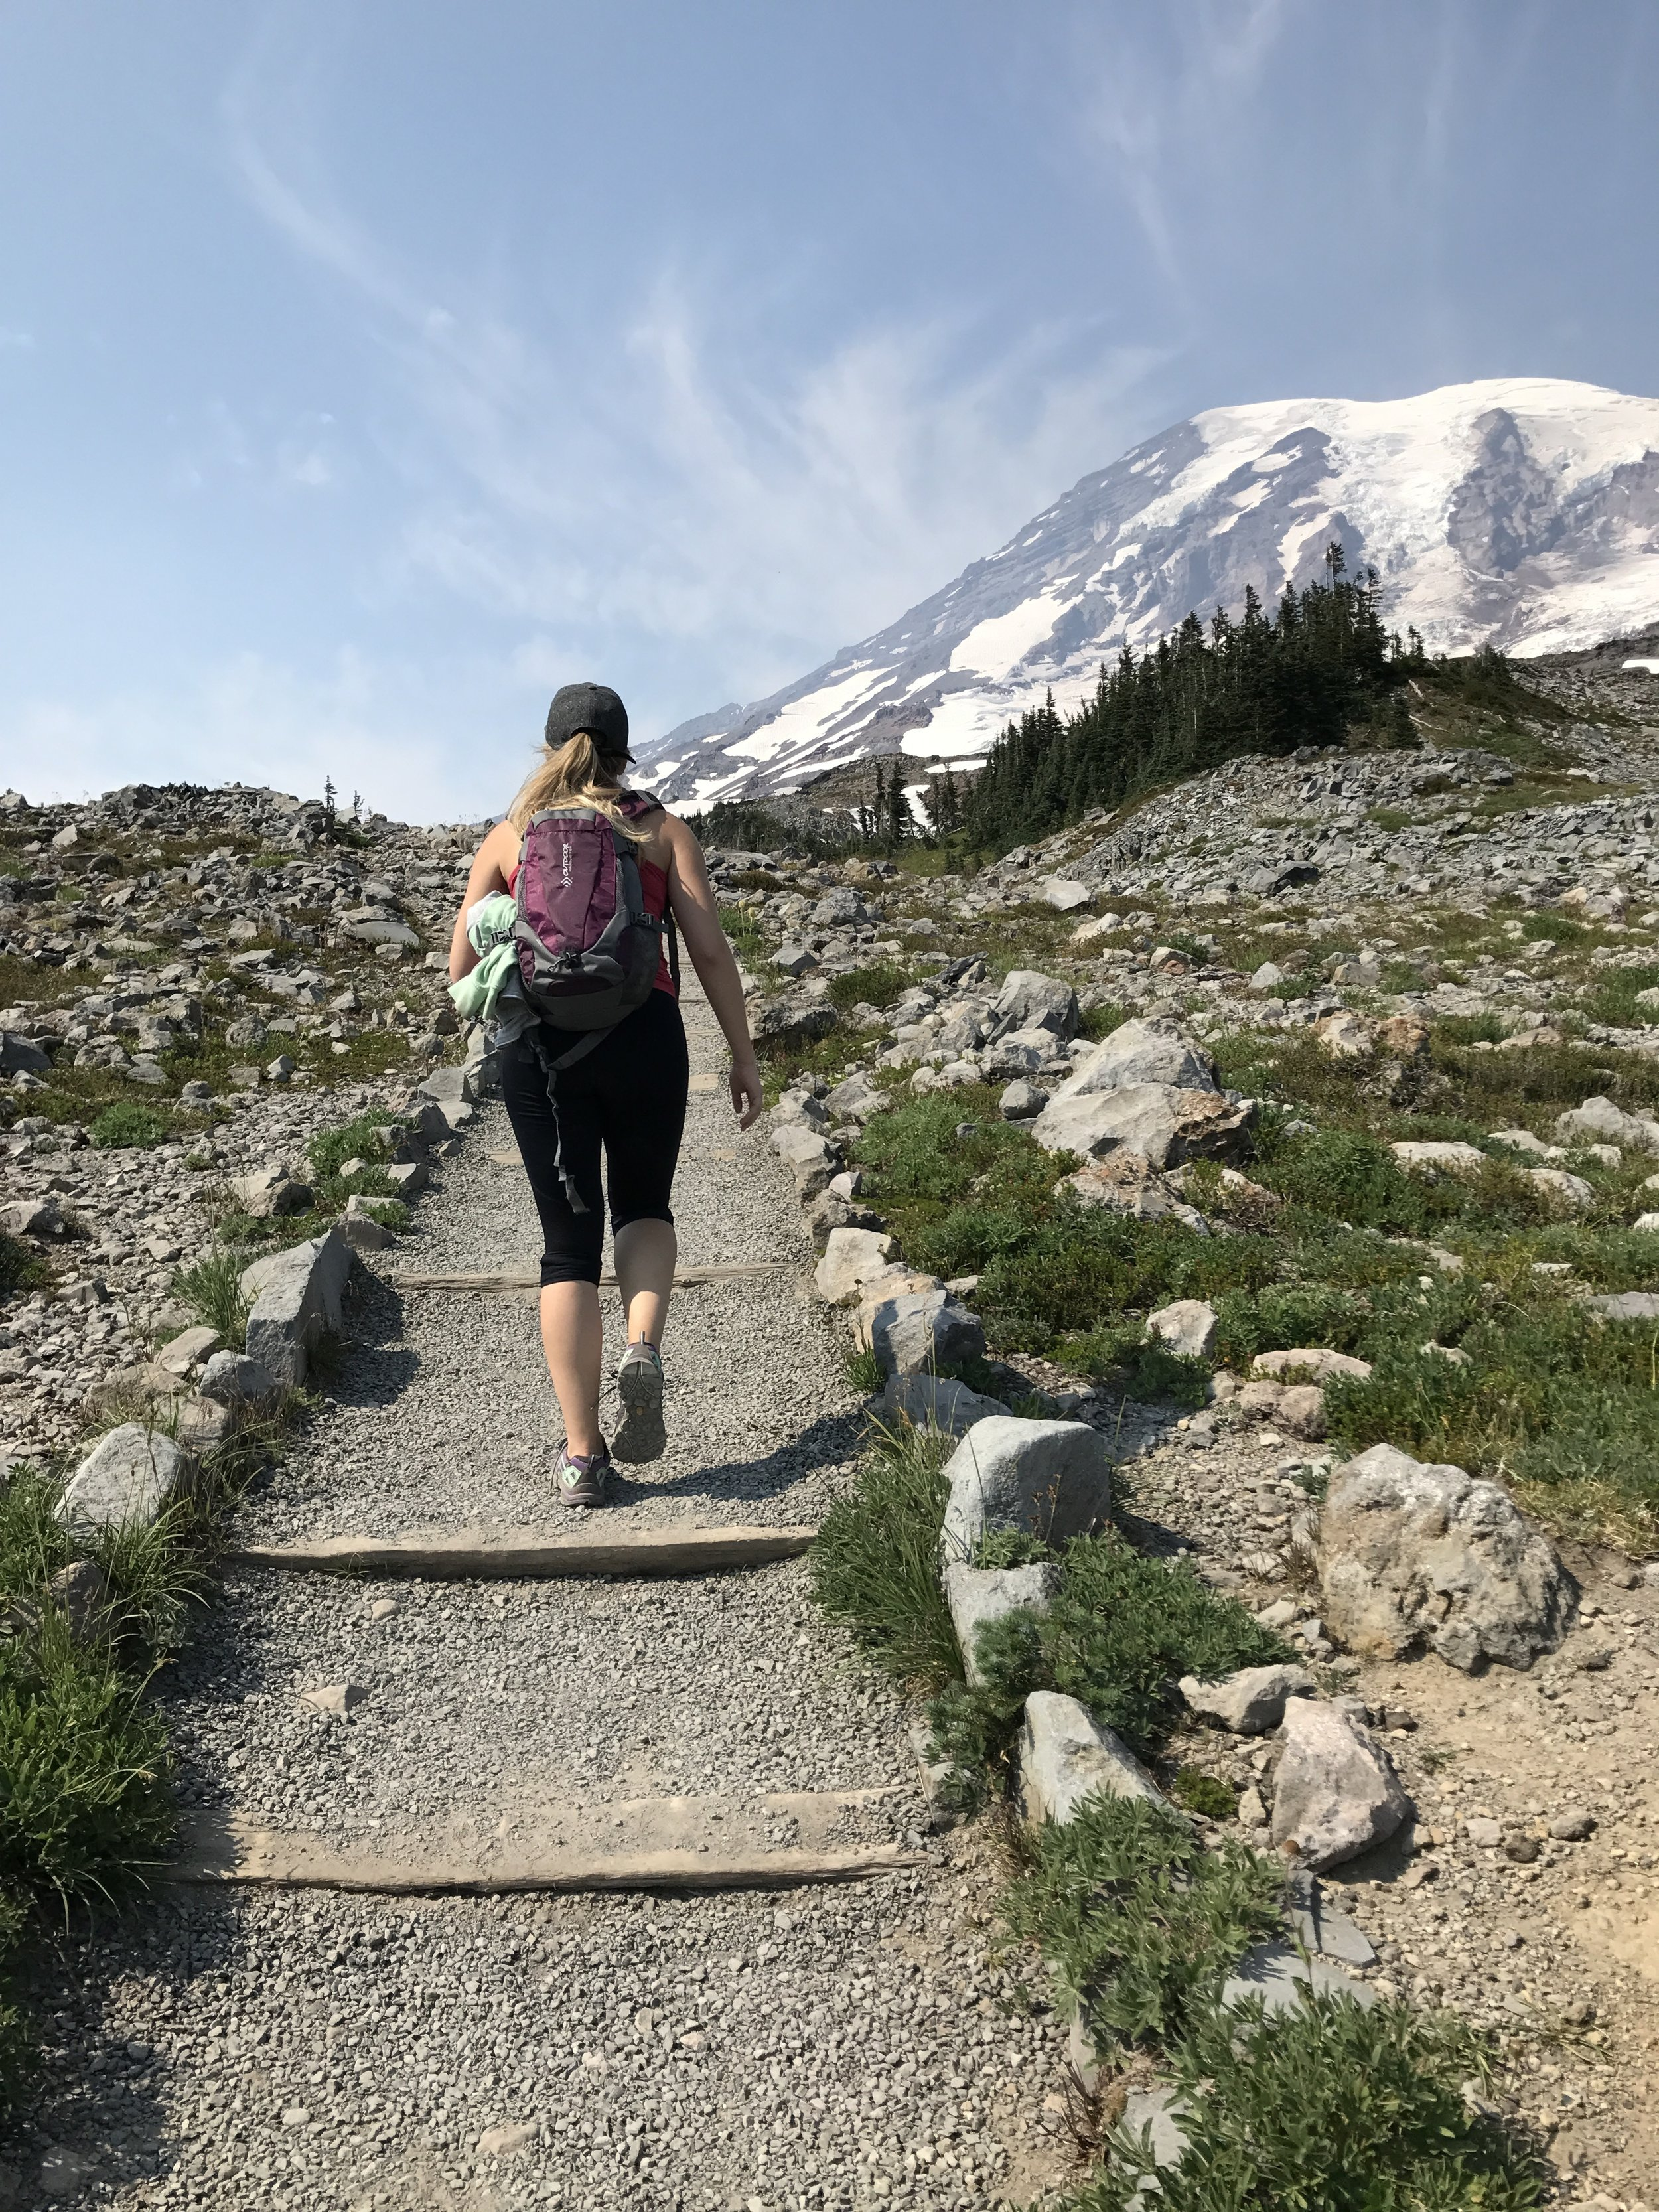 Why I thought I needed a hoodie on this hike at Mt. Rainier when it was 80 degrees is beyond me!